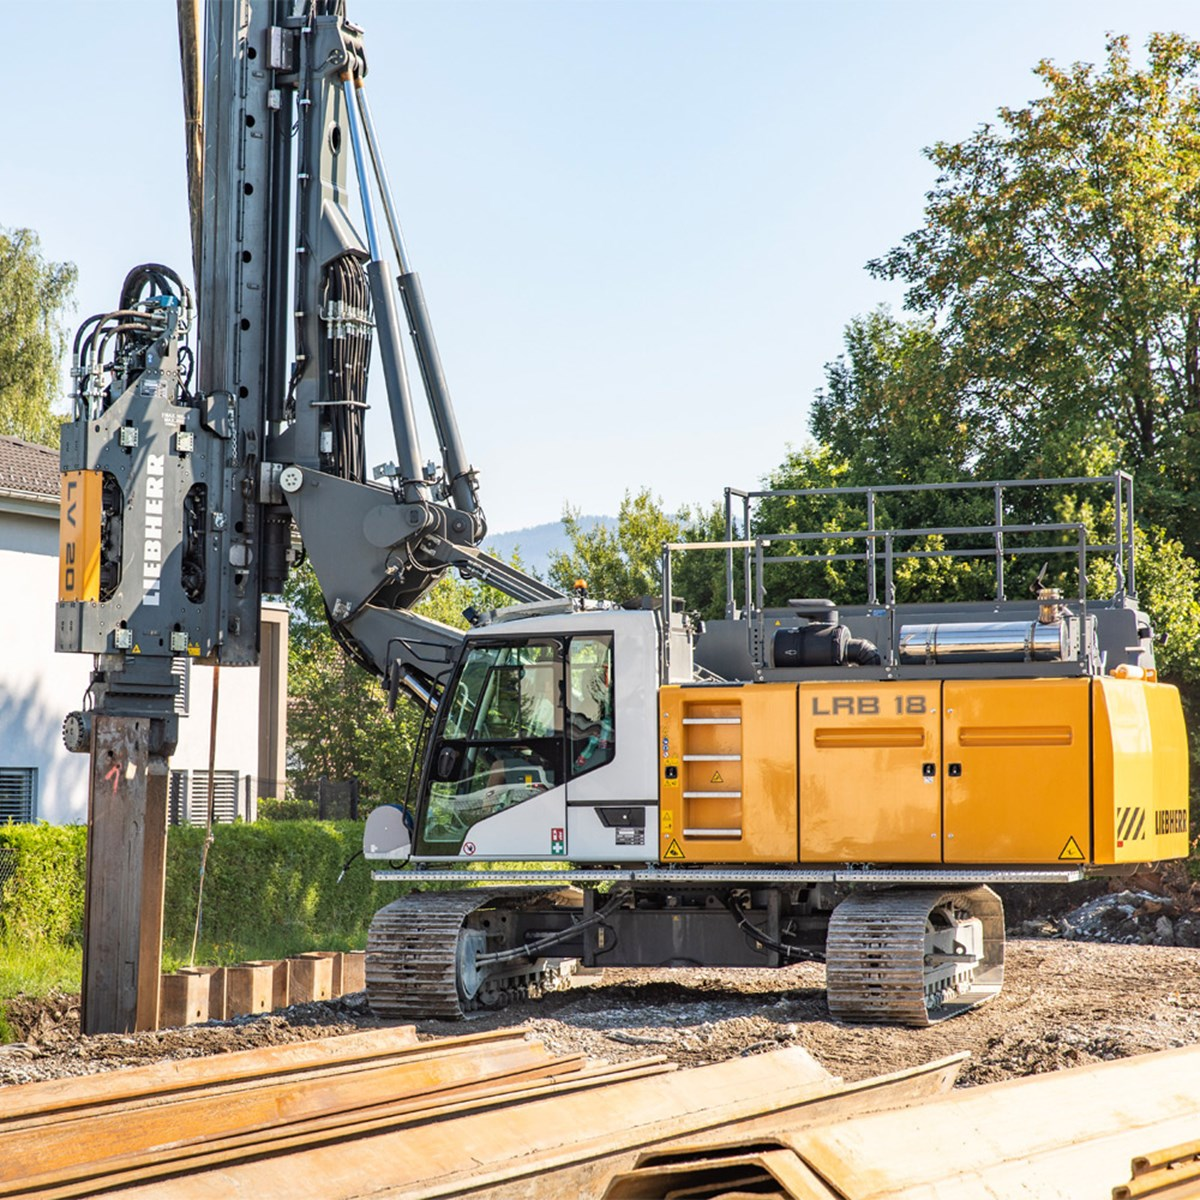 LRB 18 Piling and drilling rig - Liebherr